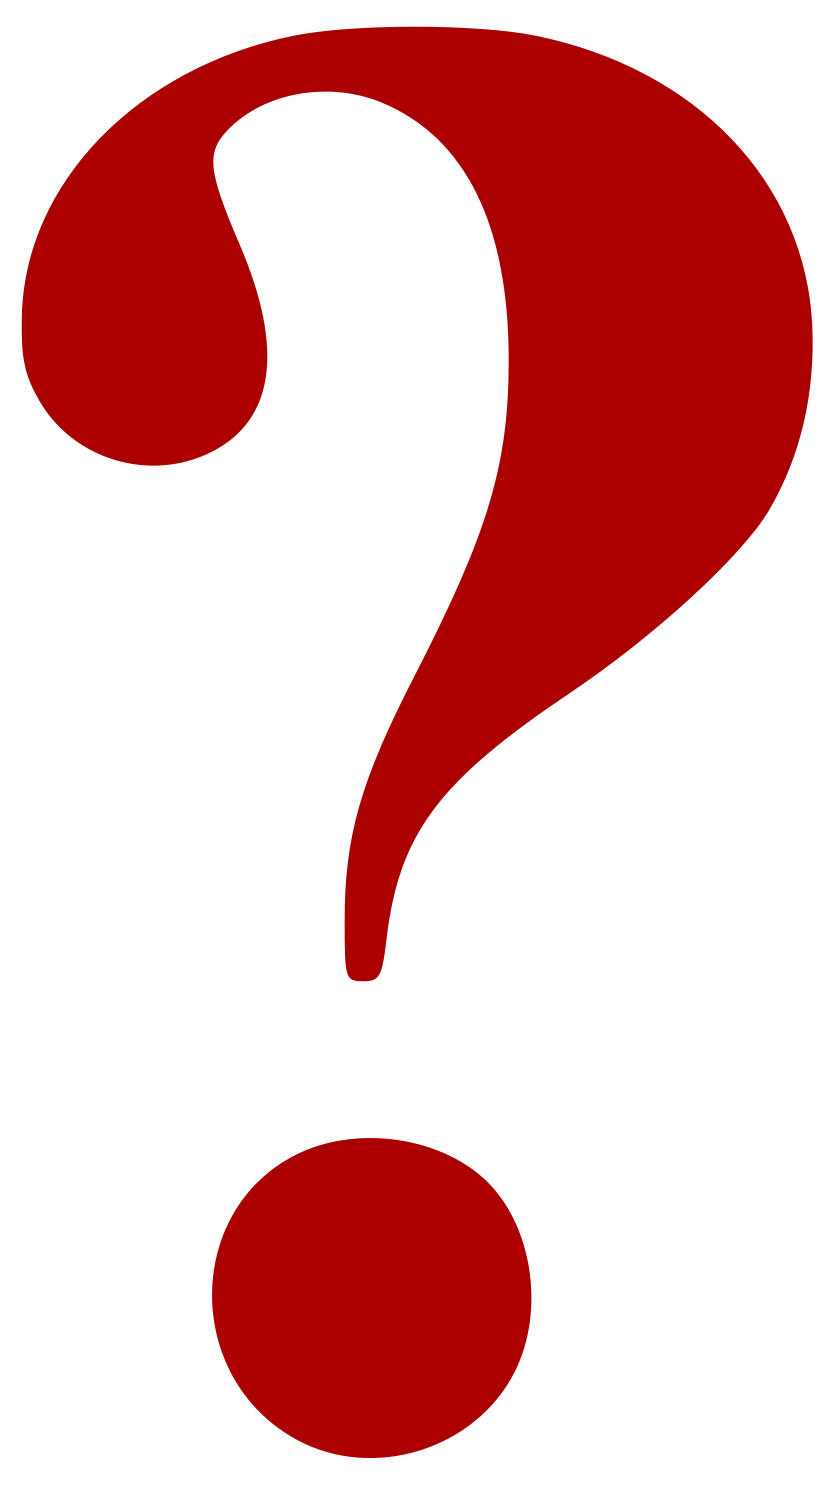 clip art freeuse Marks clipart many. Question mark png images.